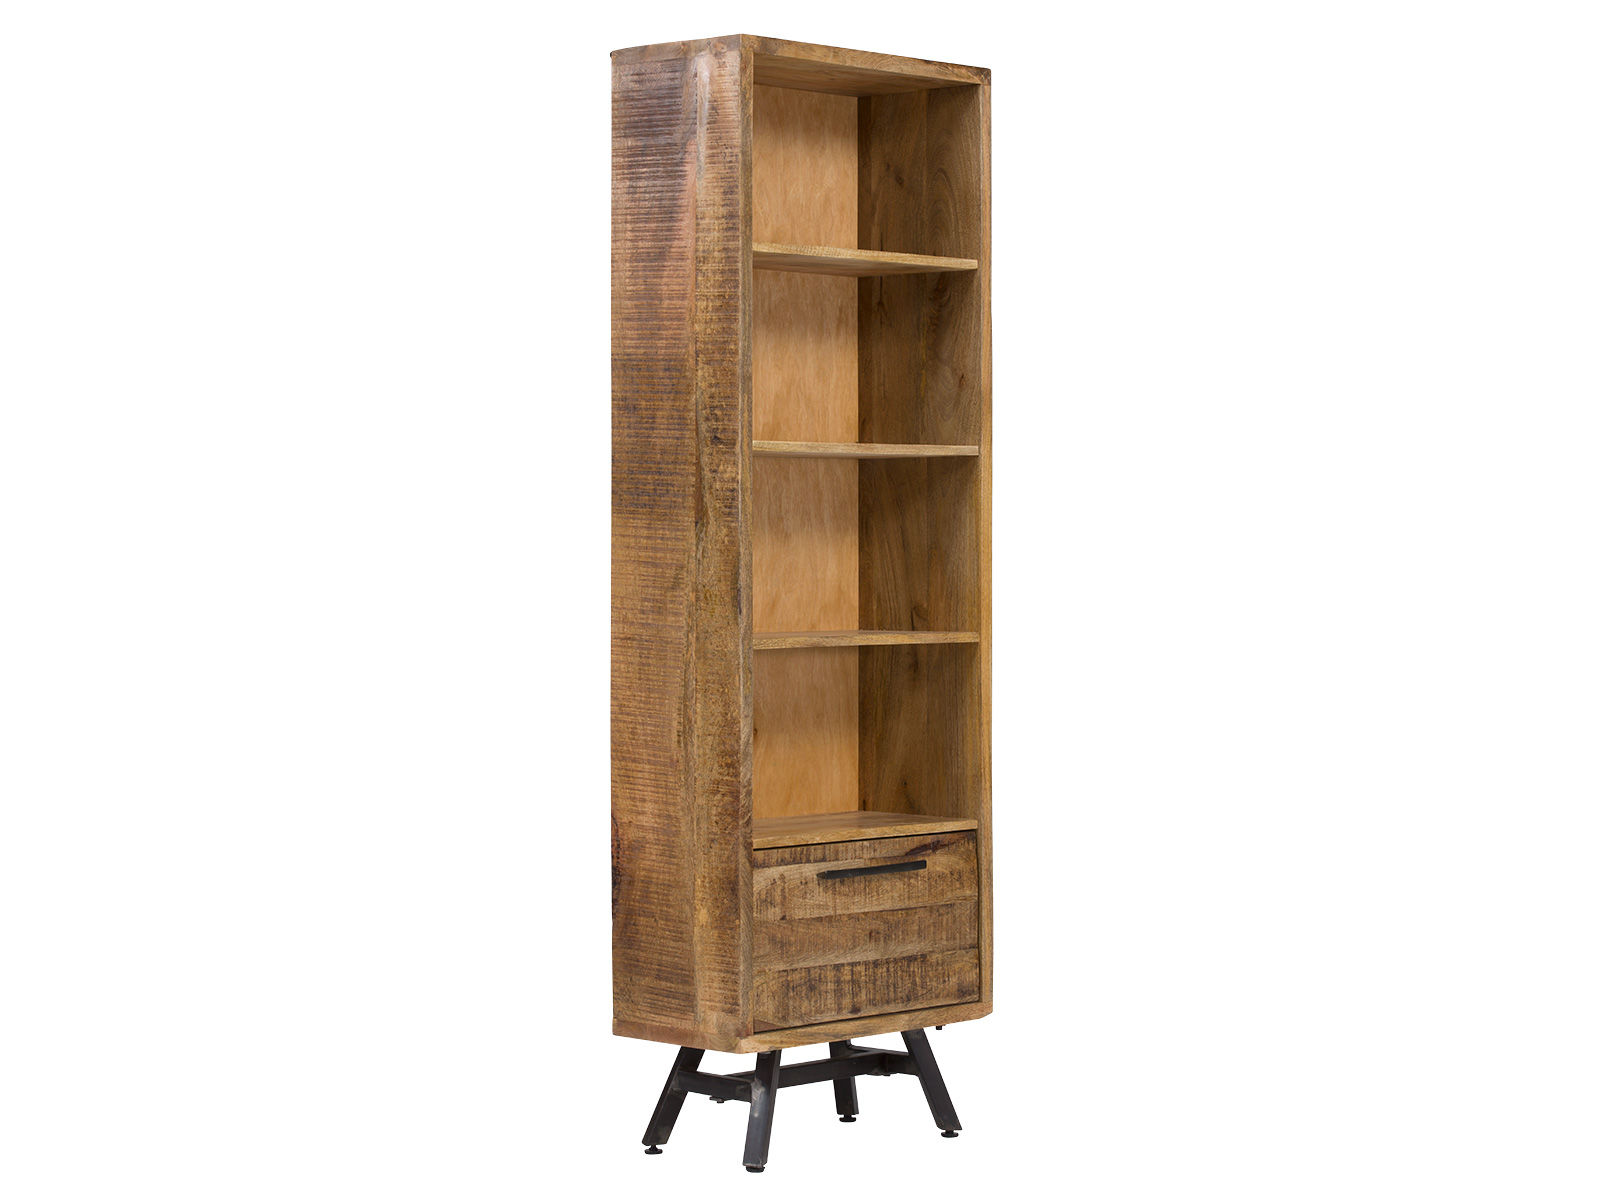 stylische regale versandkostenfrei bestellen moebeldeal. Black Bedroom Furniture Sets. Home Design Ideas